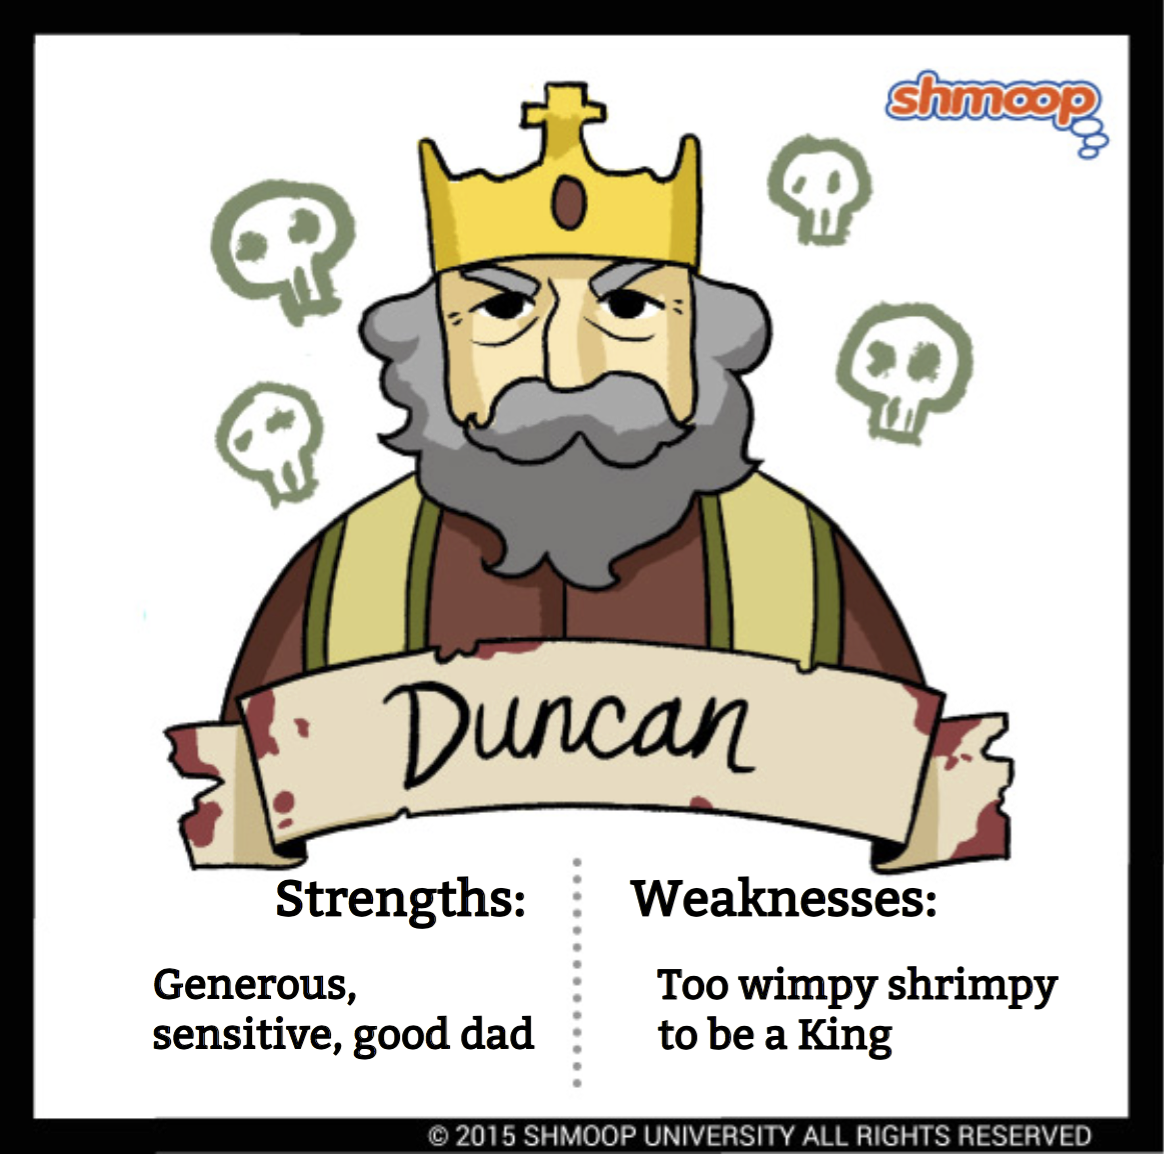 duncan in macbeth character analysis